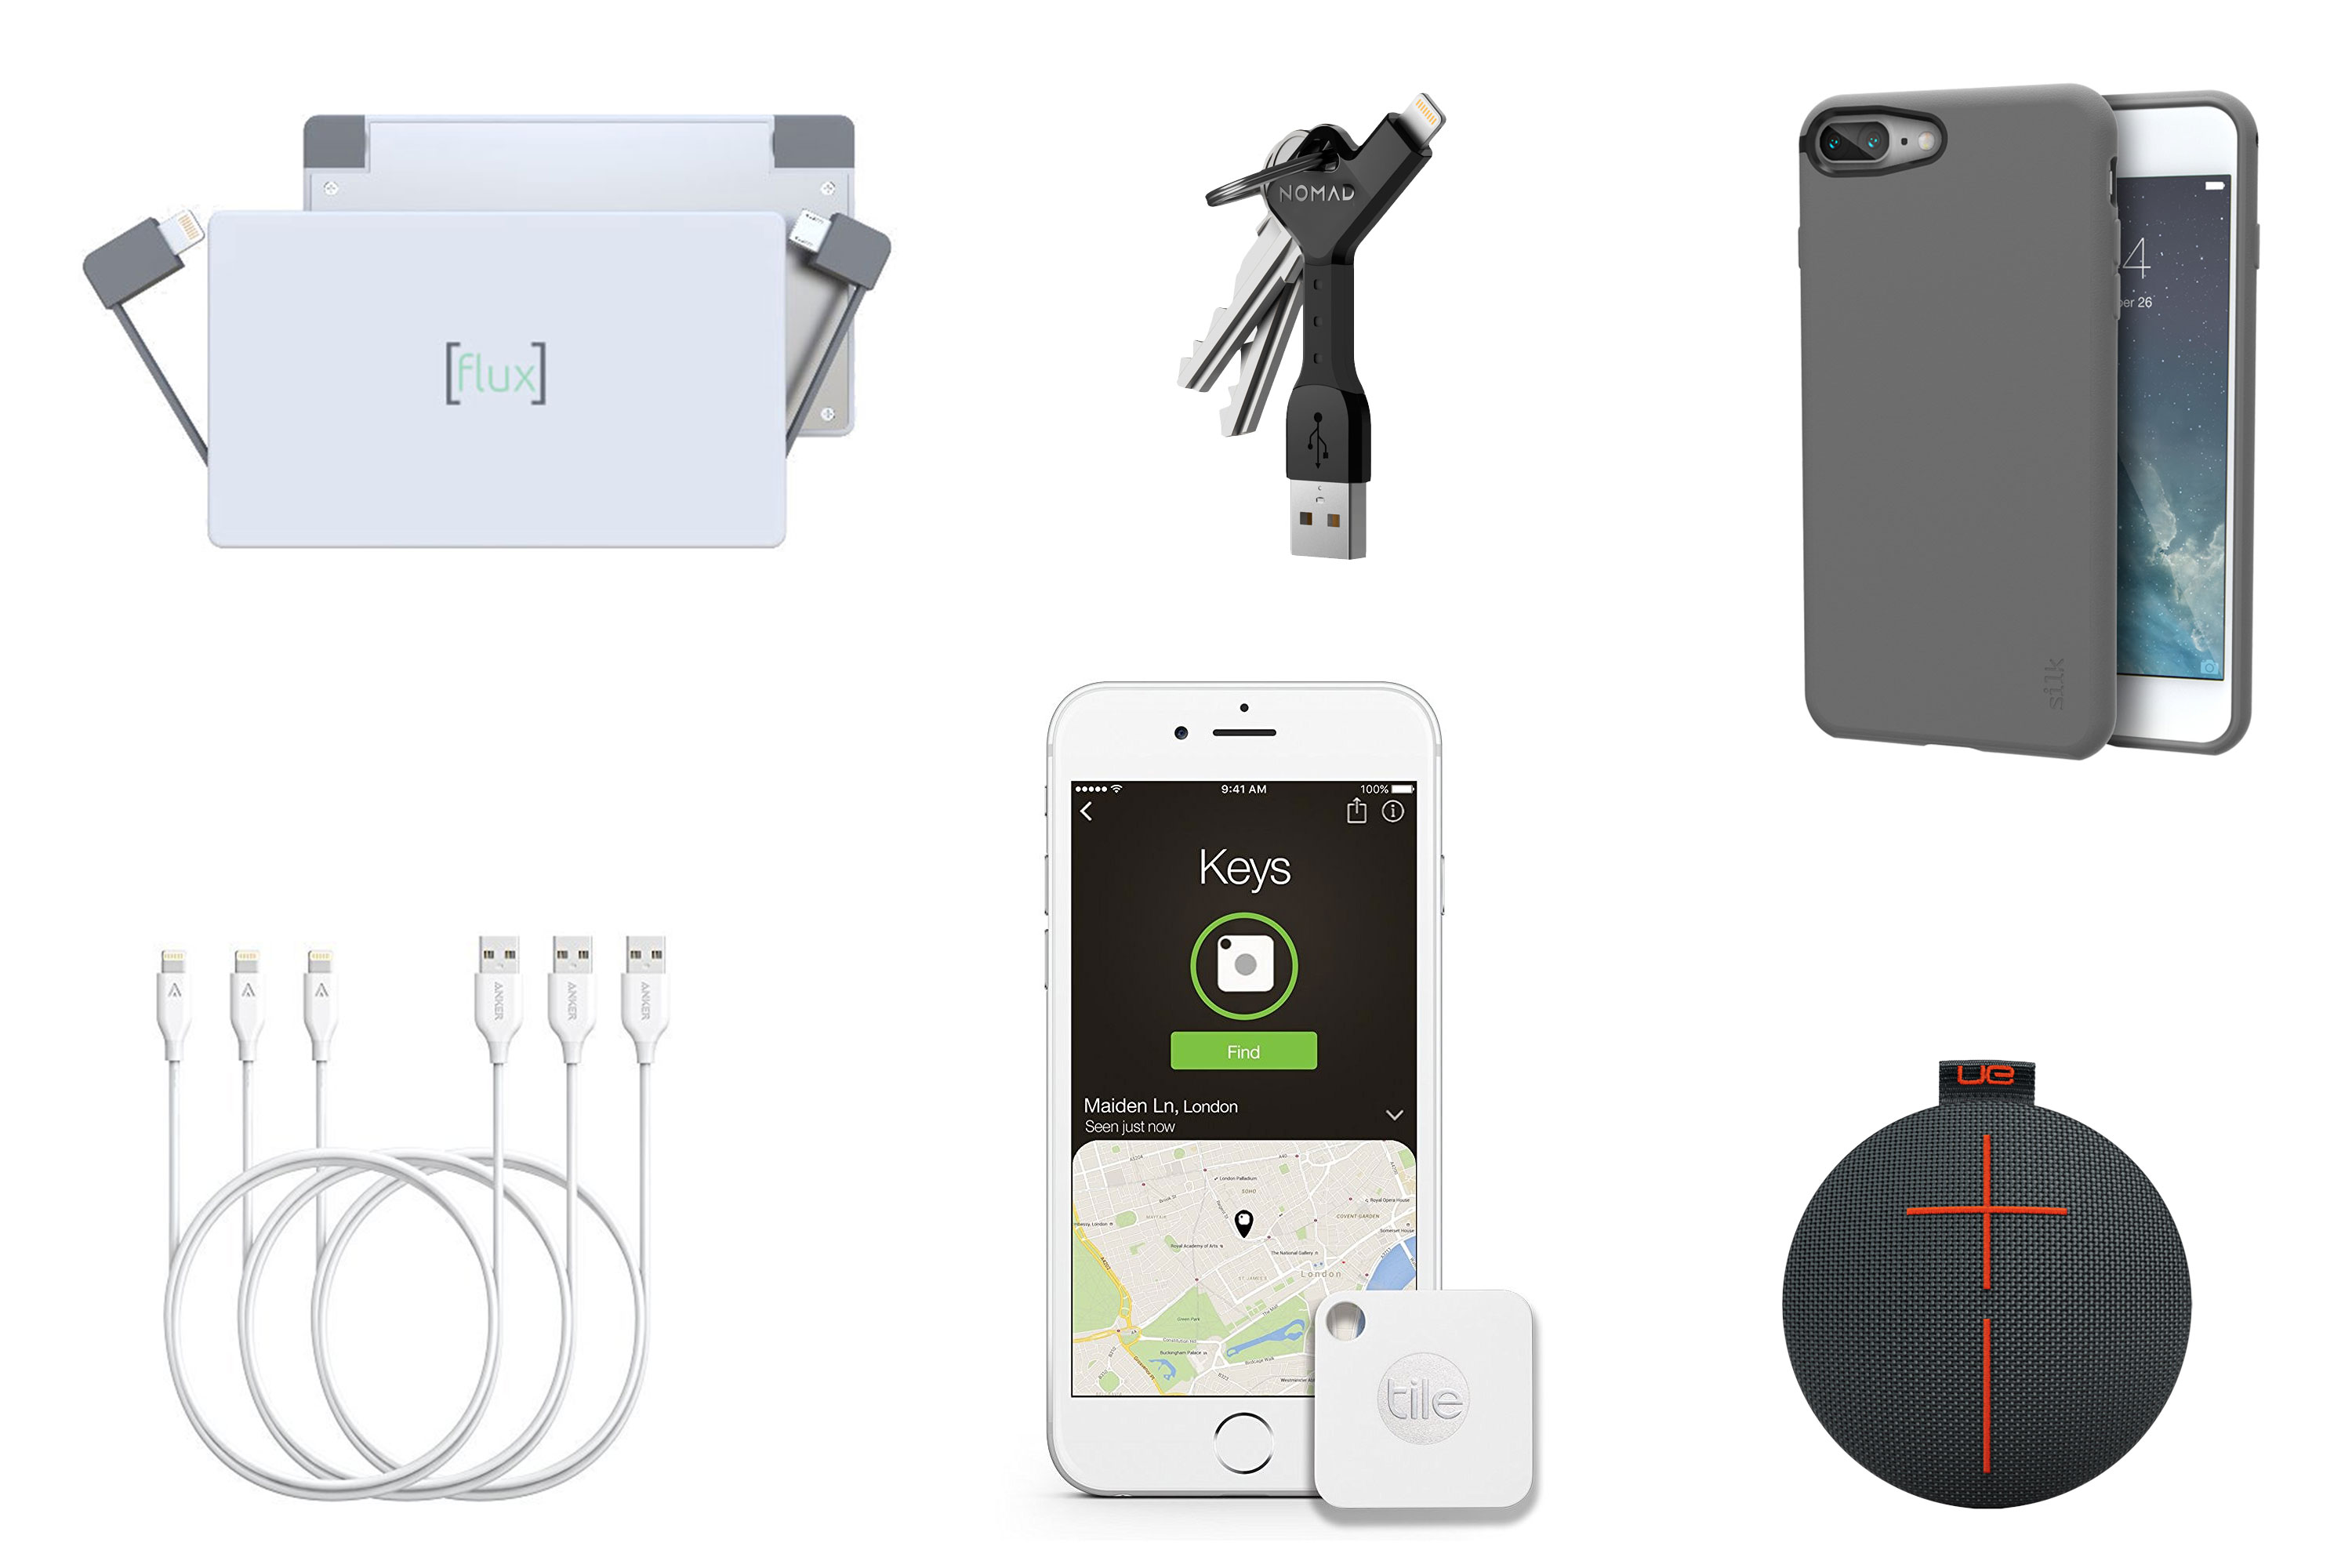 The Best iPhone Accessories for Everyone